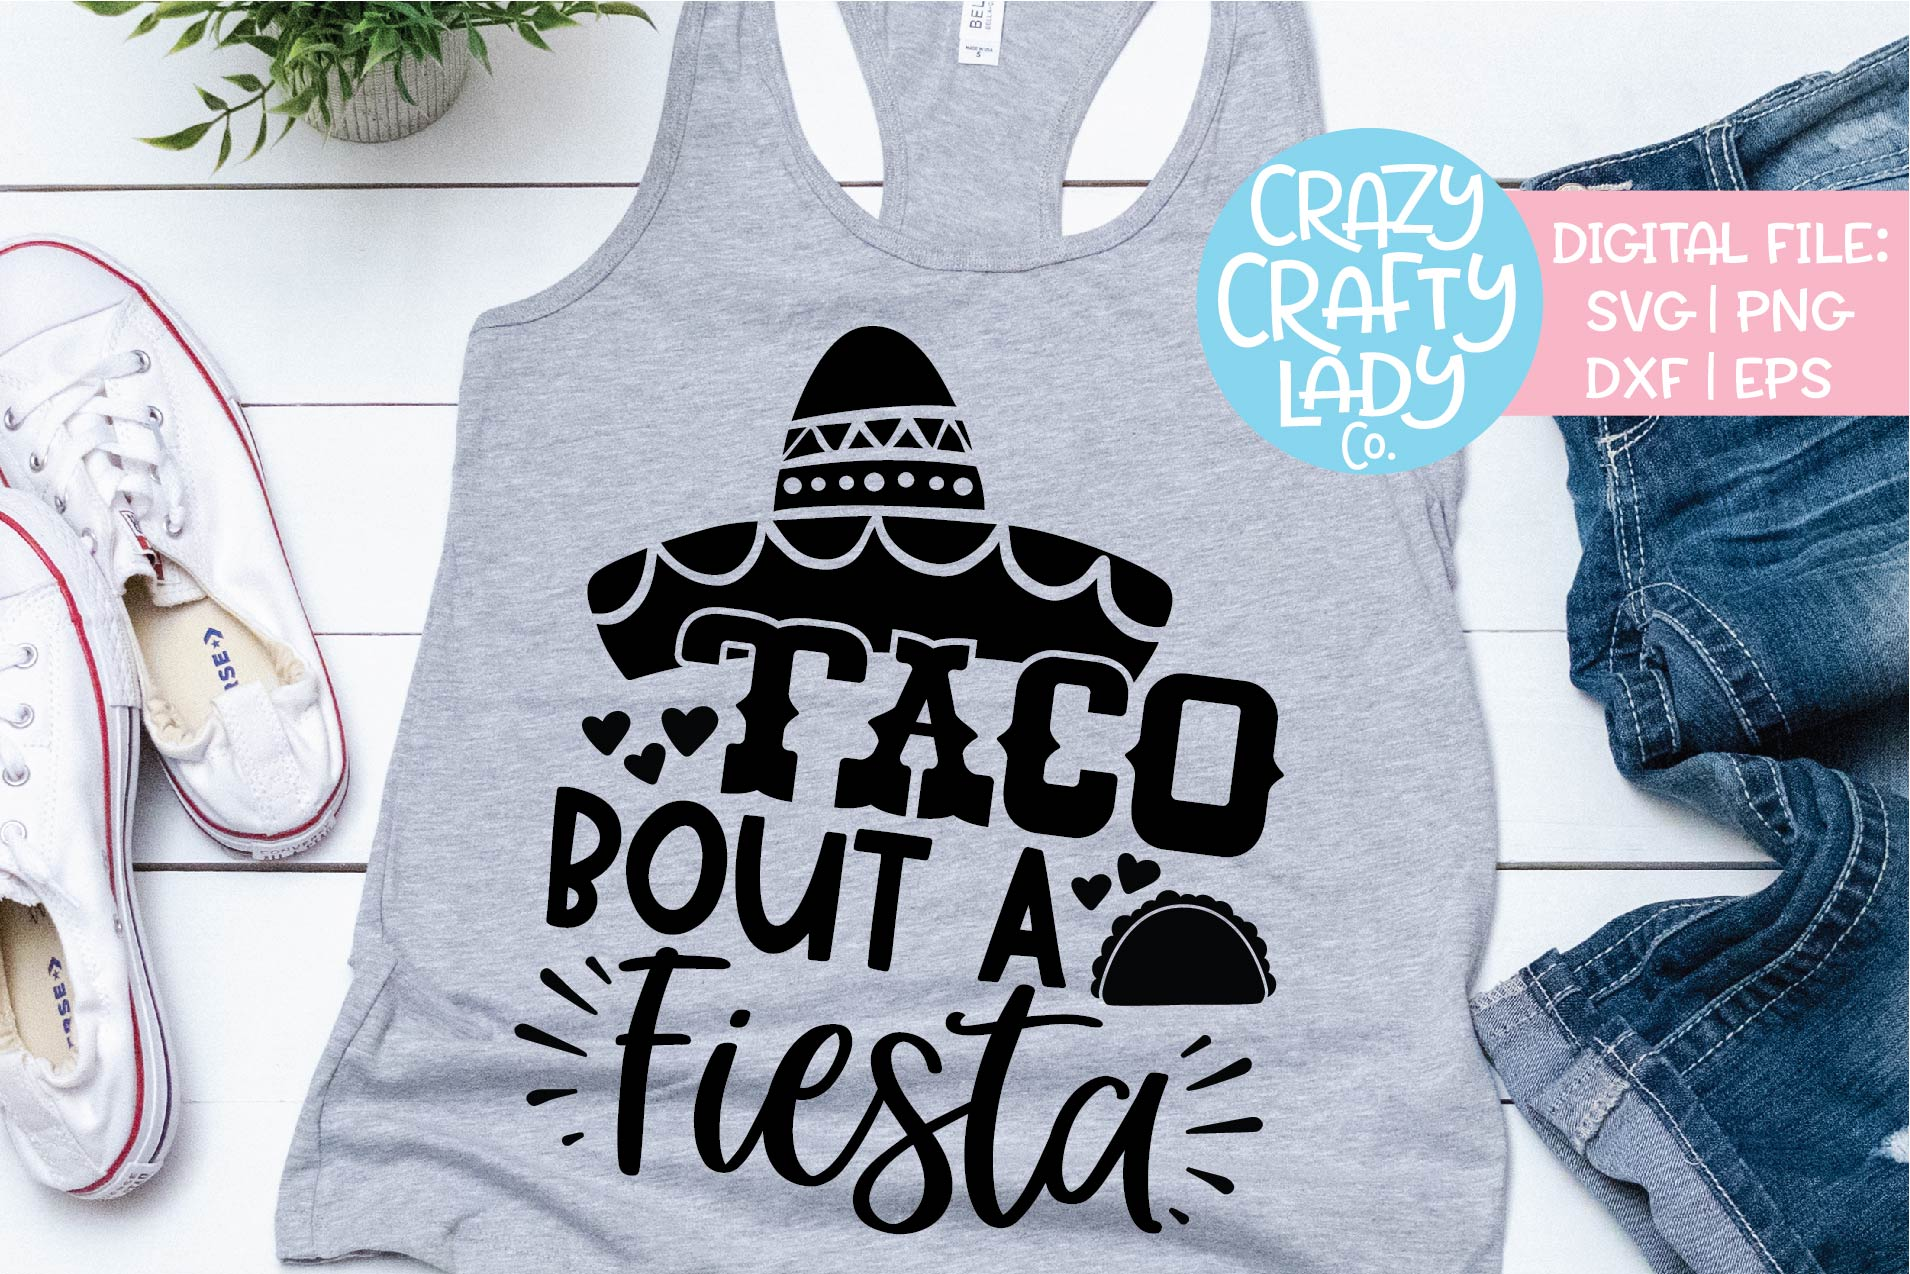 Taco Bout a Fiesta Cinco de Mayo SVG DXF EPS PNG Cut File example image 1